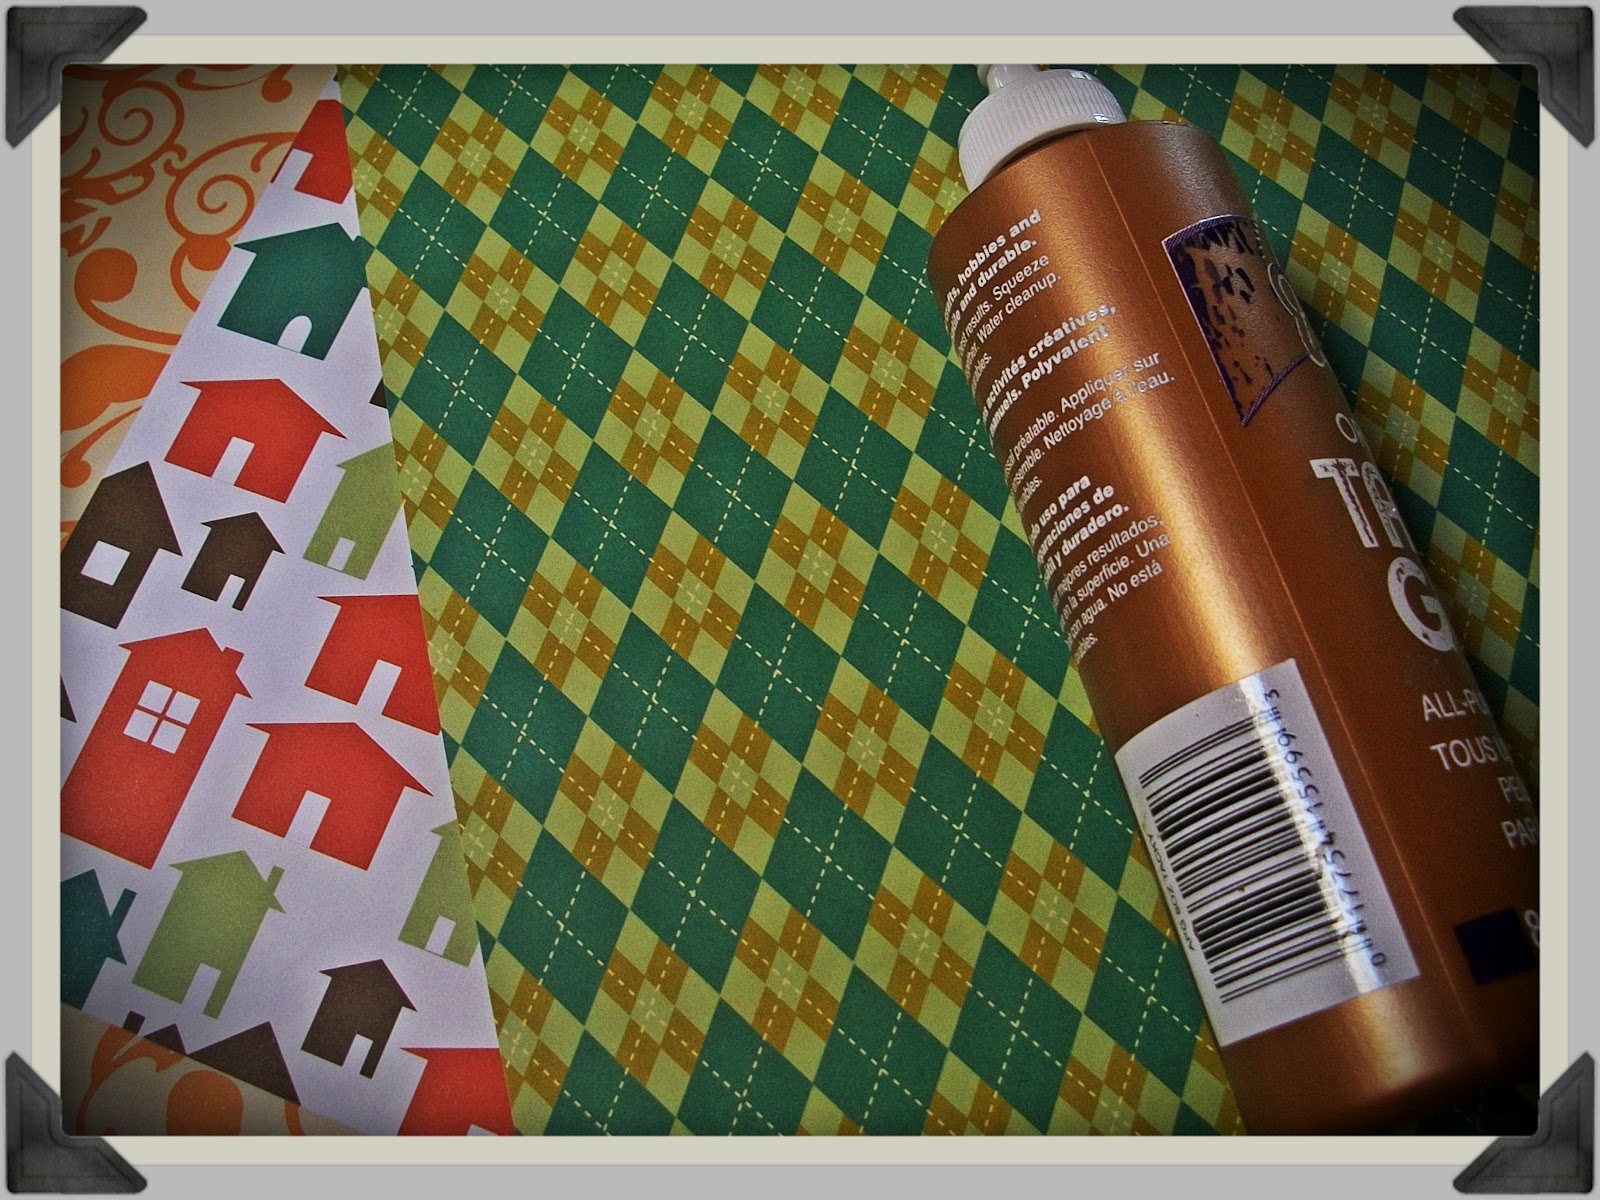 Scrapbook paper envelope - Literally All You Need Is Some Glue And Square Paper That S Why Scrapbooking Paper Works Do Well It S Already Square So You Don T Have To Cut It